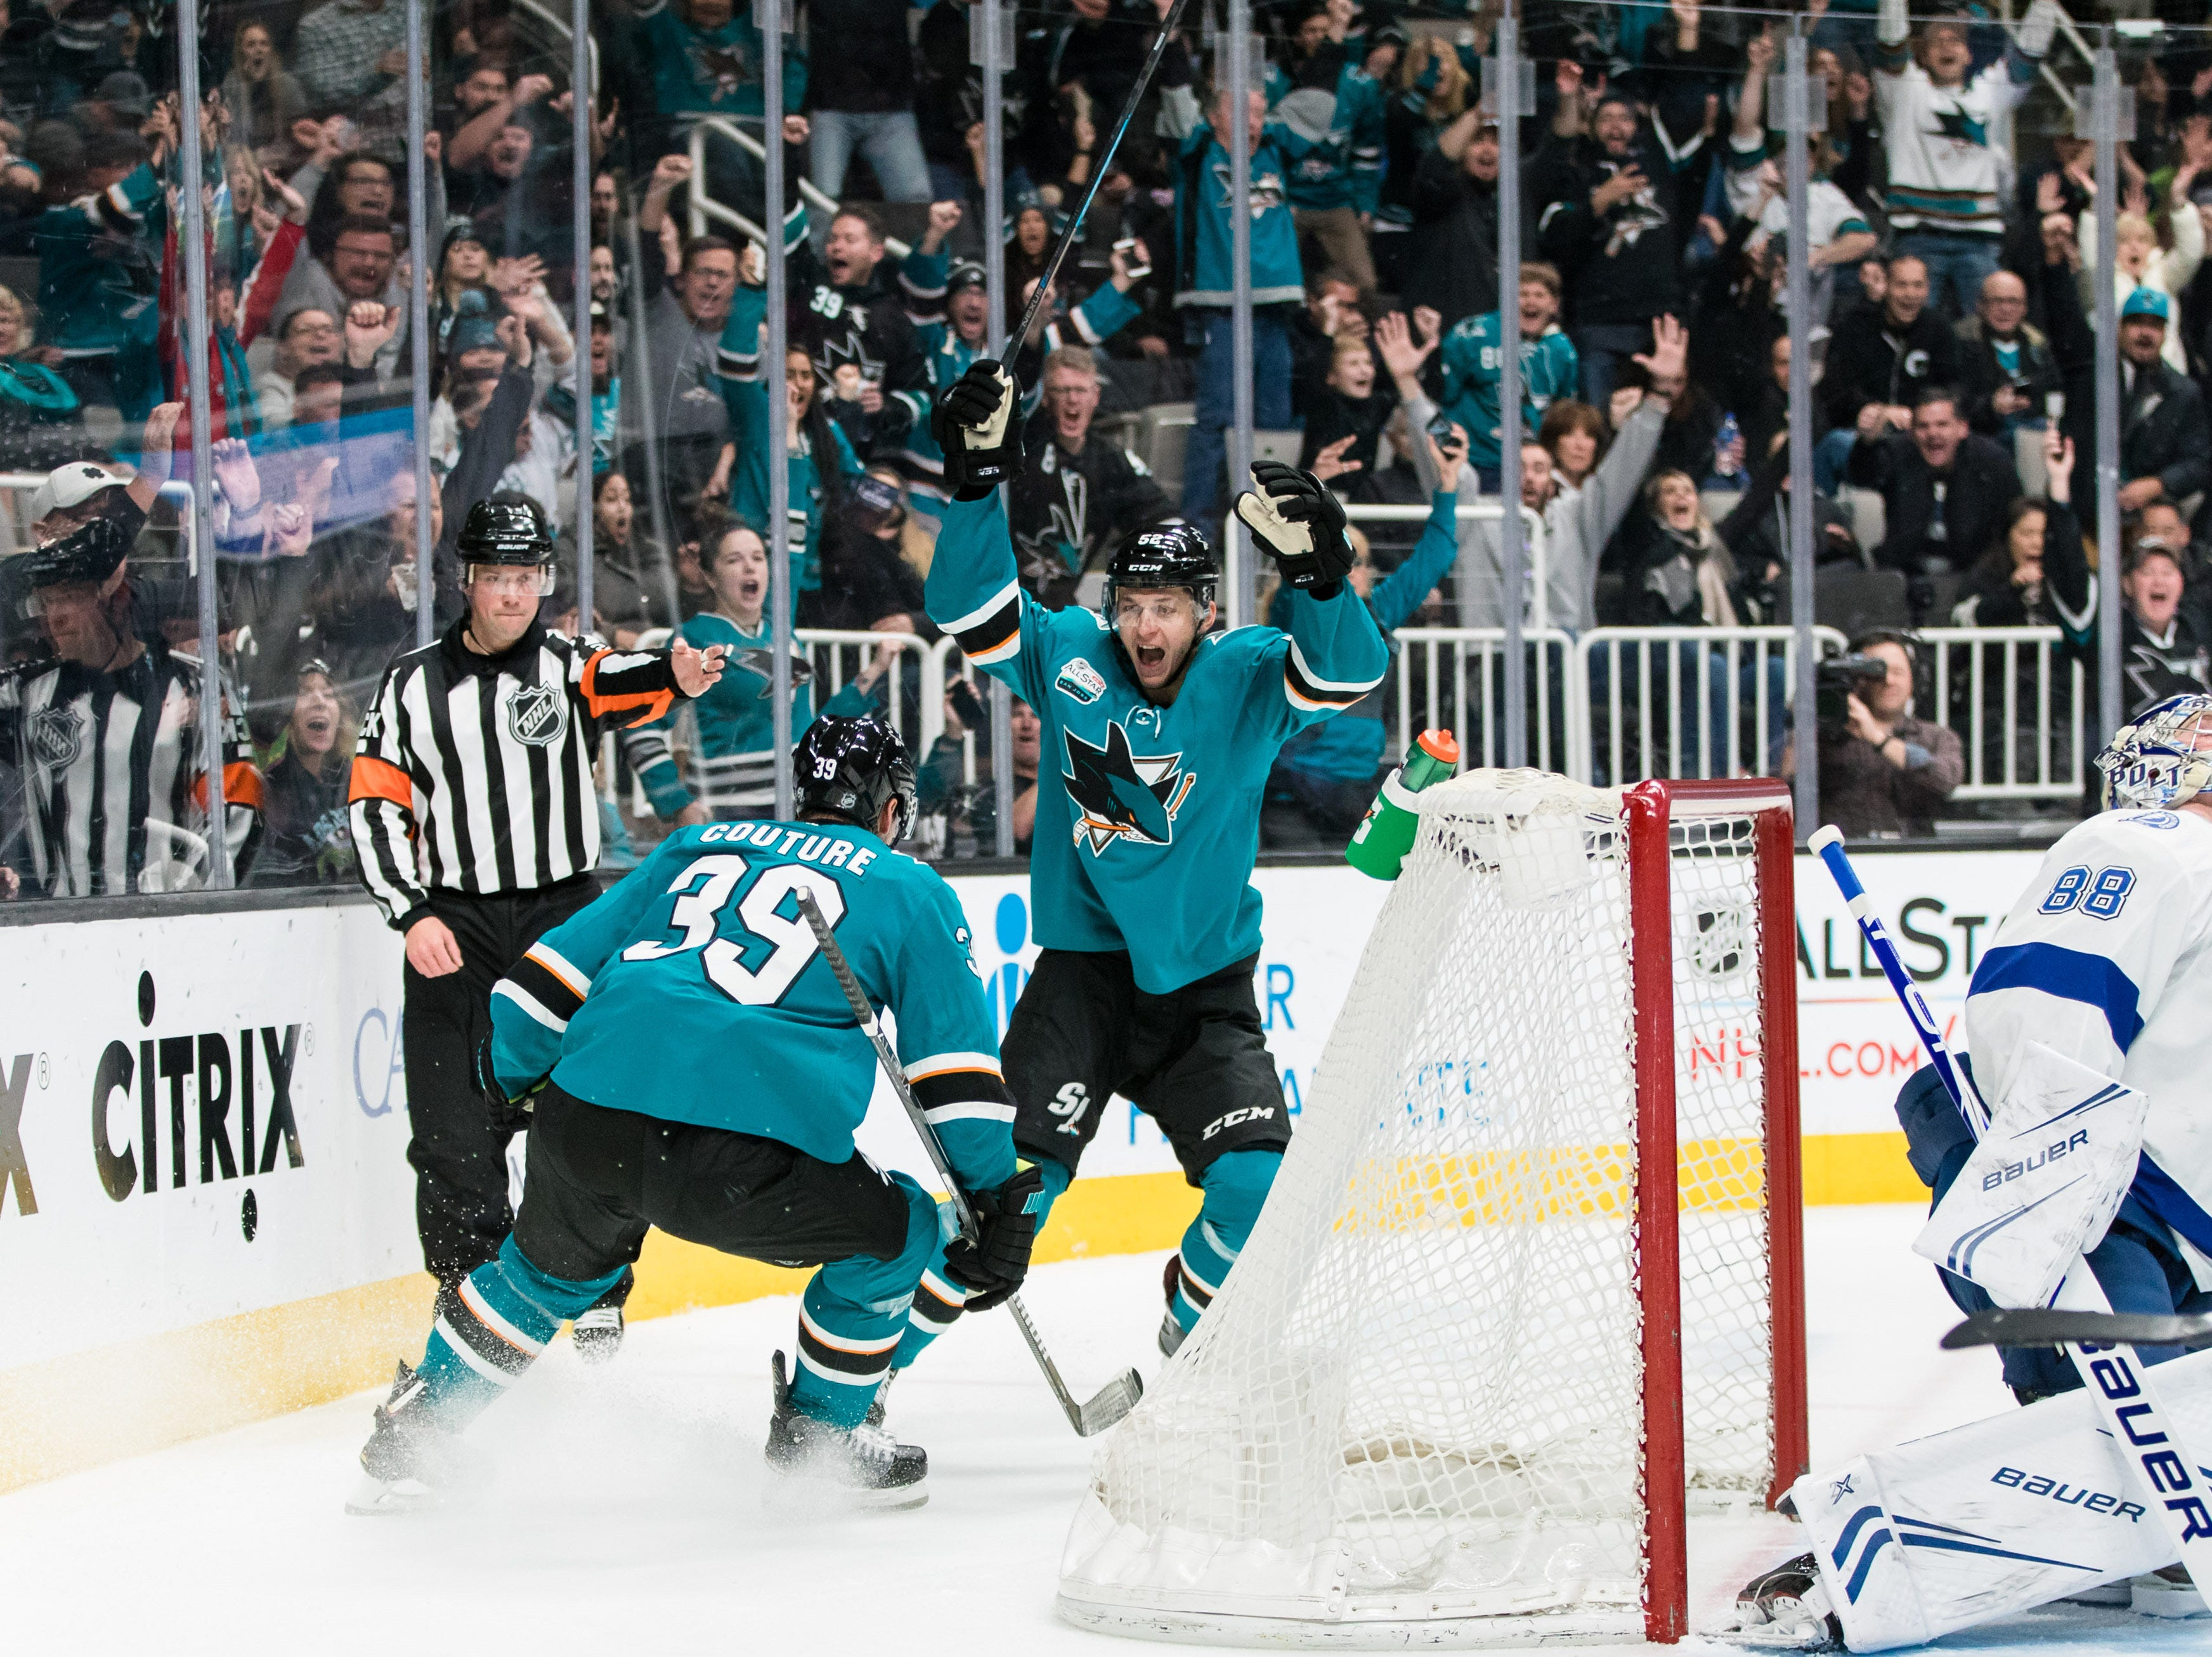 Jan. 5: San Jose Sharks forwards Logan Couture (39) and Lukas Radil (52) celebrate after scoring a goal against the Tampa Bay Lightning in the first period at SAP Center.